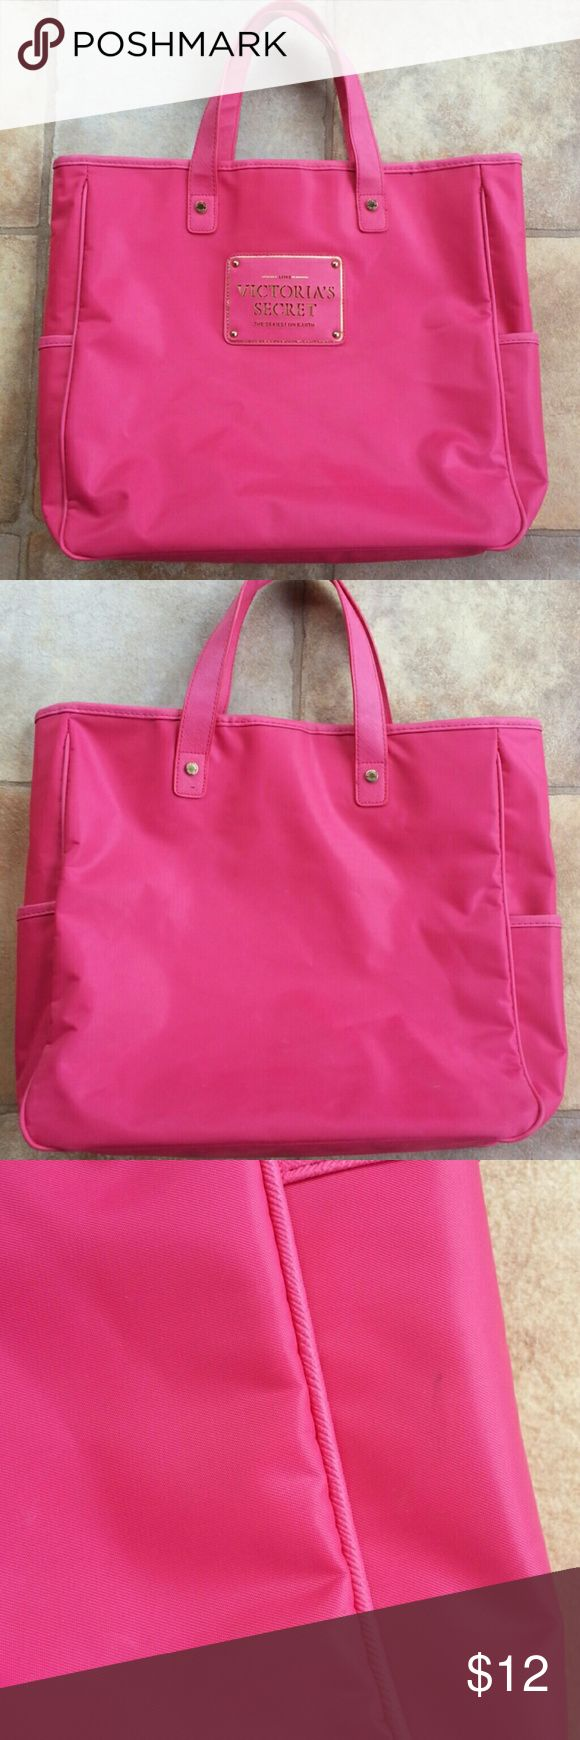 VS Hot Pink Tote Please refer to pictures.  There are many dents, dings and small stains.  Interior is in great condition. Bag got lodged between other things causing damage outside.  There are no rips or tears.  I cleaned the outside as best as I could. You may have better luck than me. Two side pockets and button closure Measures 12 1/2H X 13W X 3D Bundle and save 15% Thanks for looking! Victoria's Secret Bags Totes